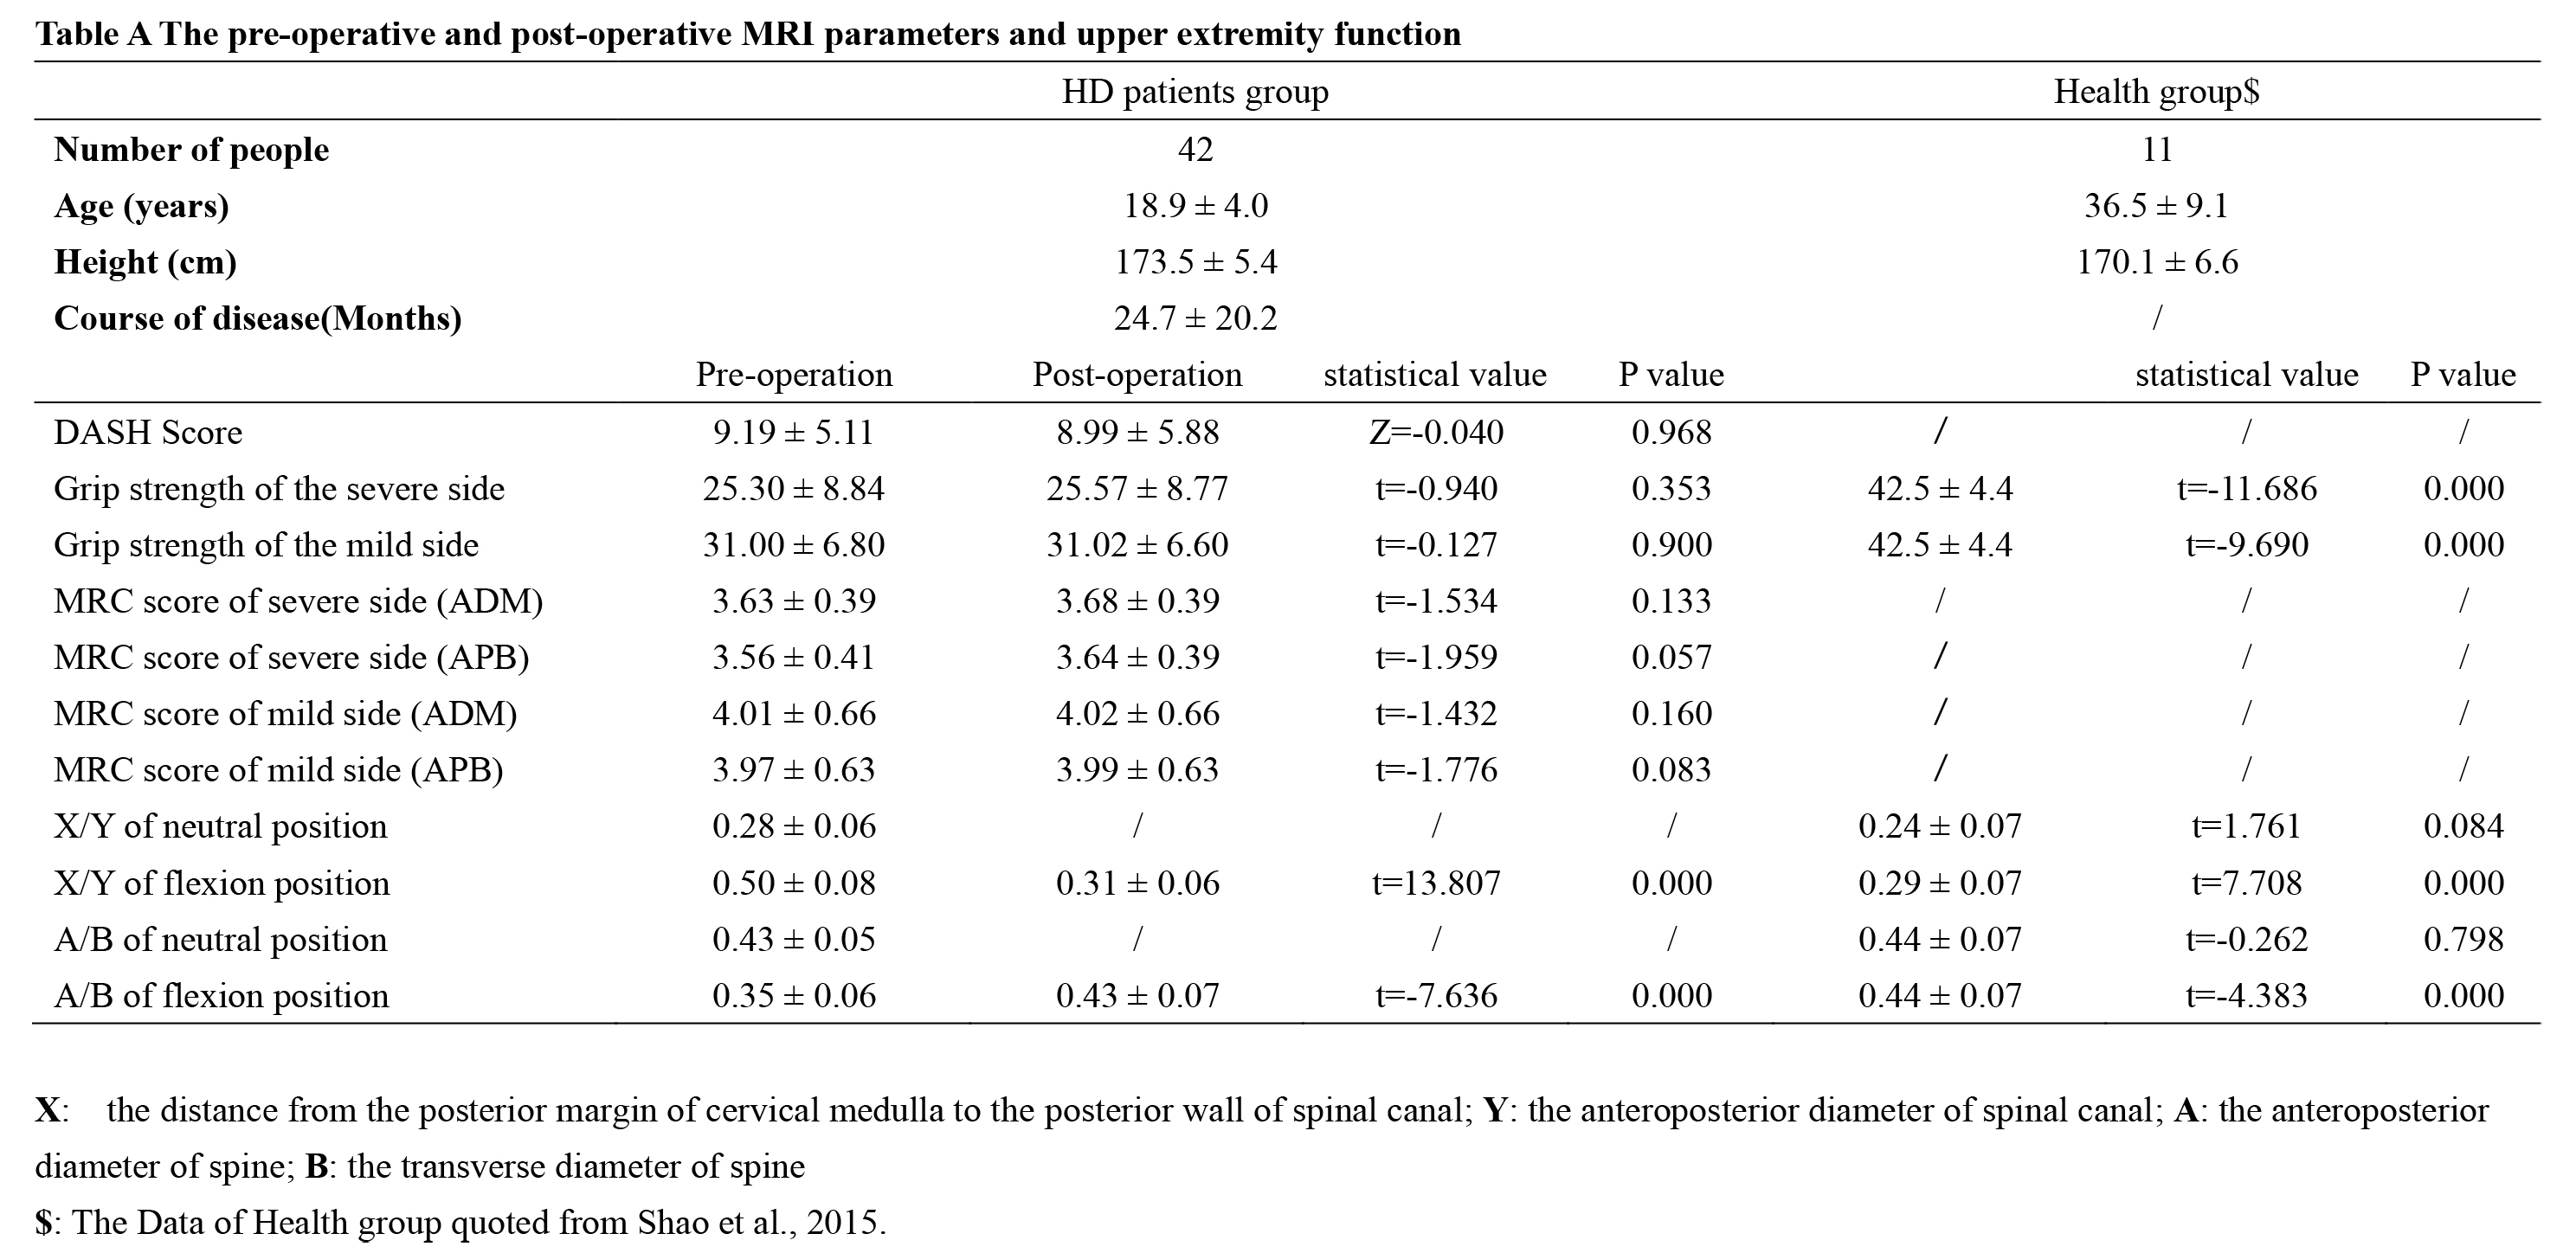 The pre-operative and post-operative MRI parameters and upper extremity function